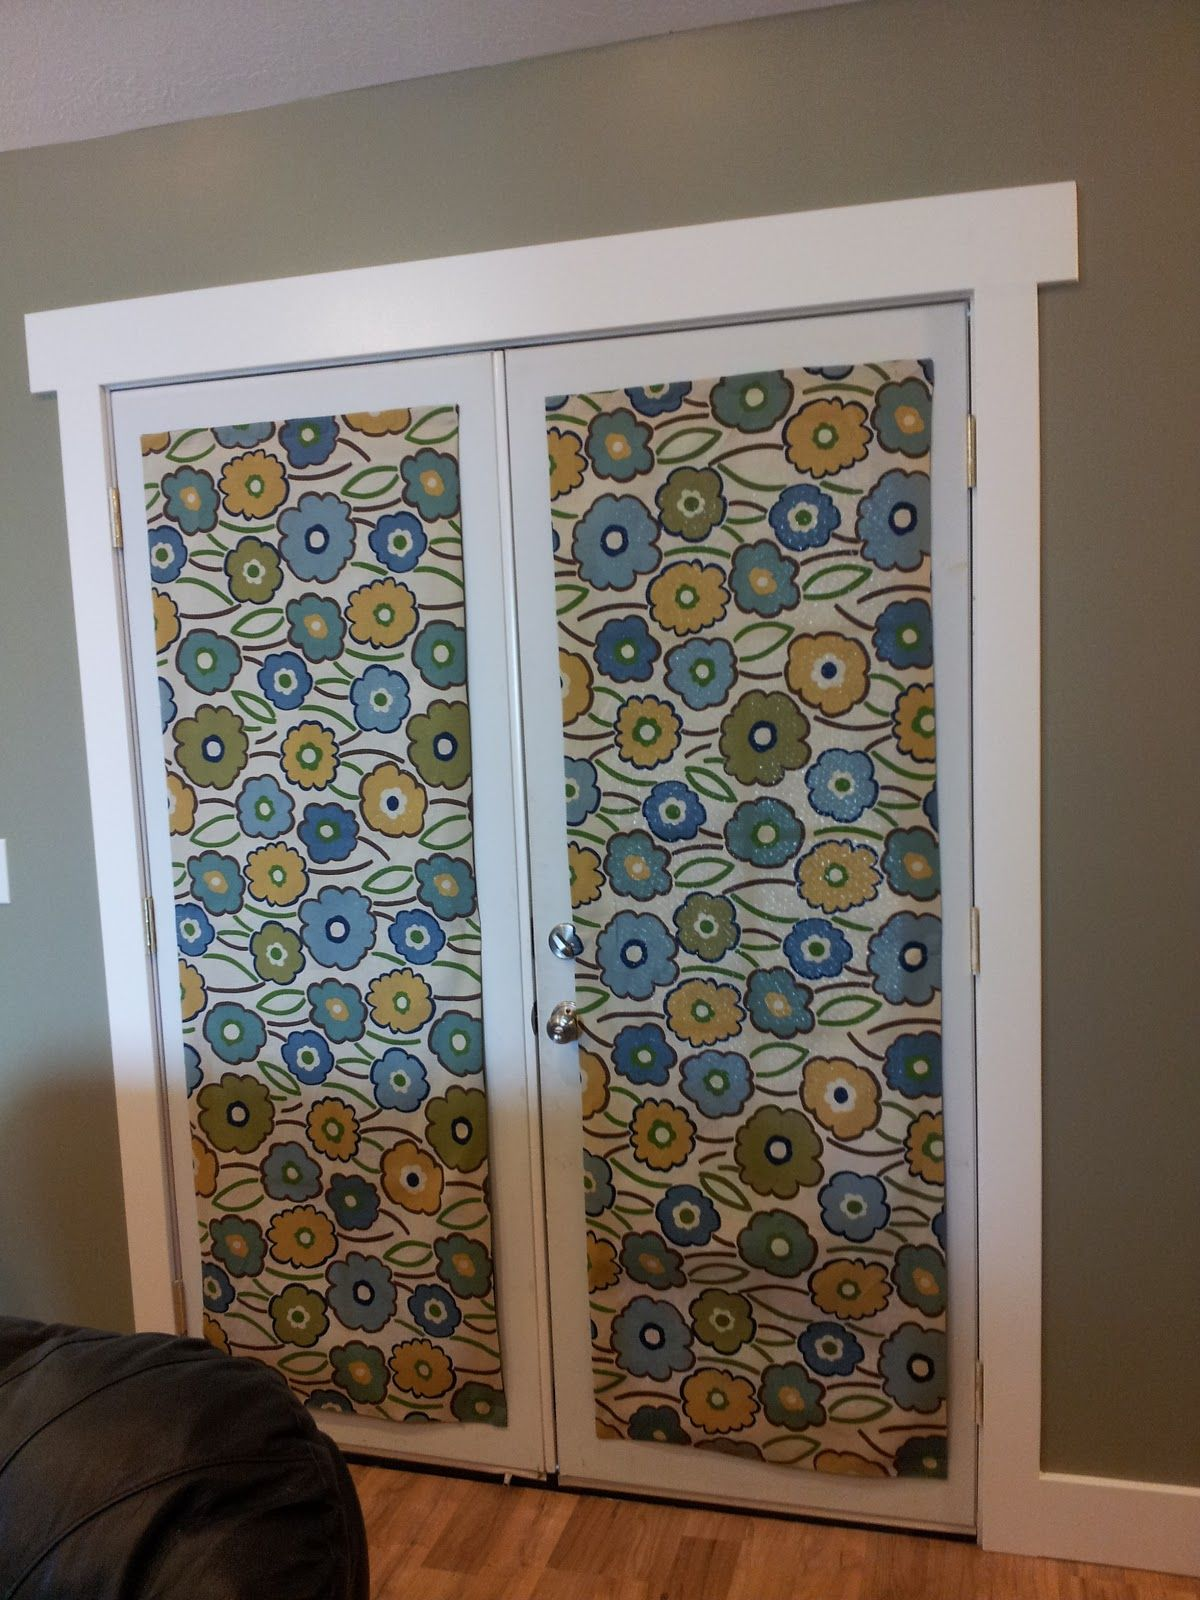 Magnetic curtains to cover the glass panes in the metal door